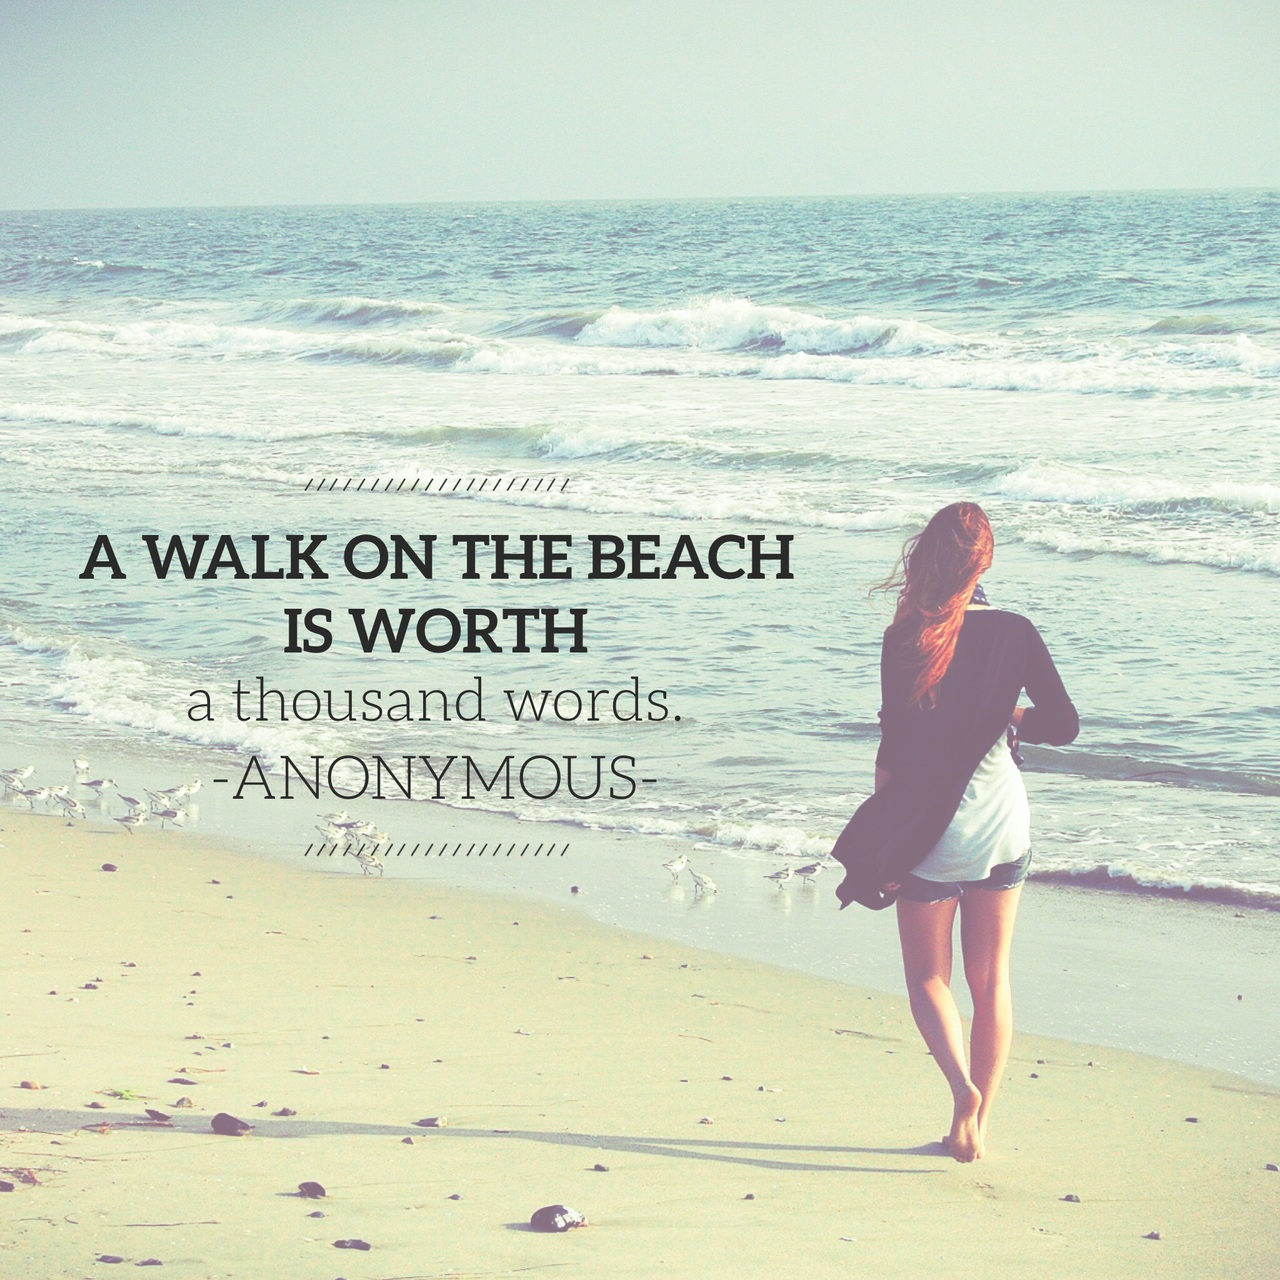 beach, easel, font, girl, ocean, phrases, qotd, quotes, sand, sayings, summer, text, thoughts, typography, walk, wallpaper, water, waves, words, easel app, made with easel, a thousand words